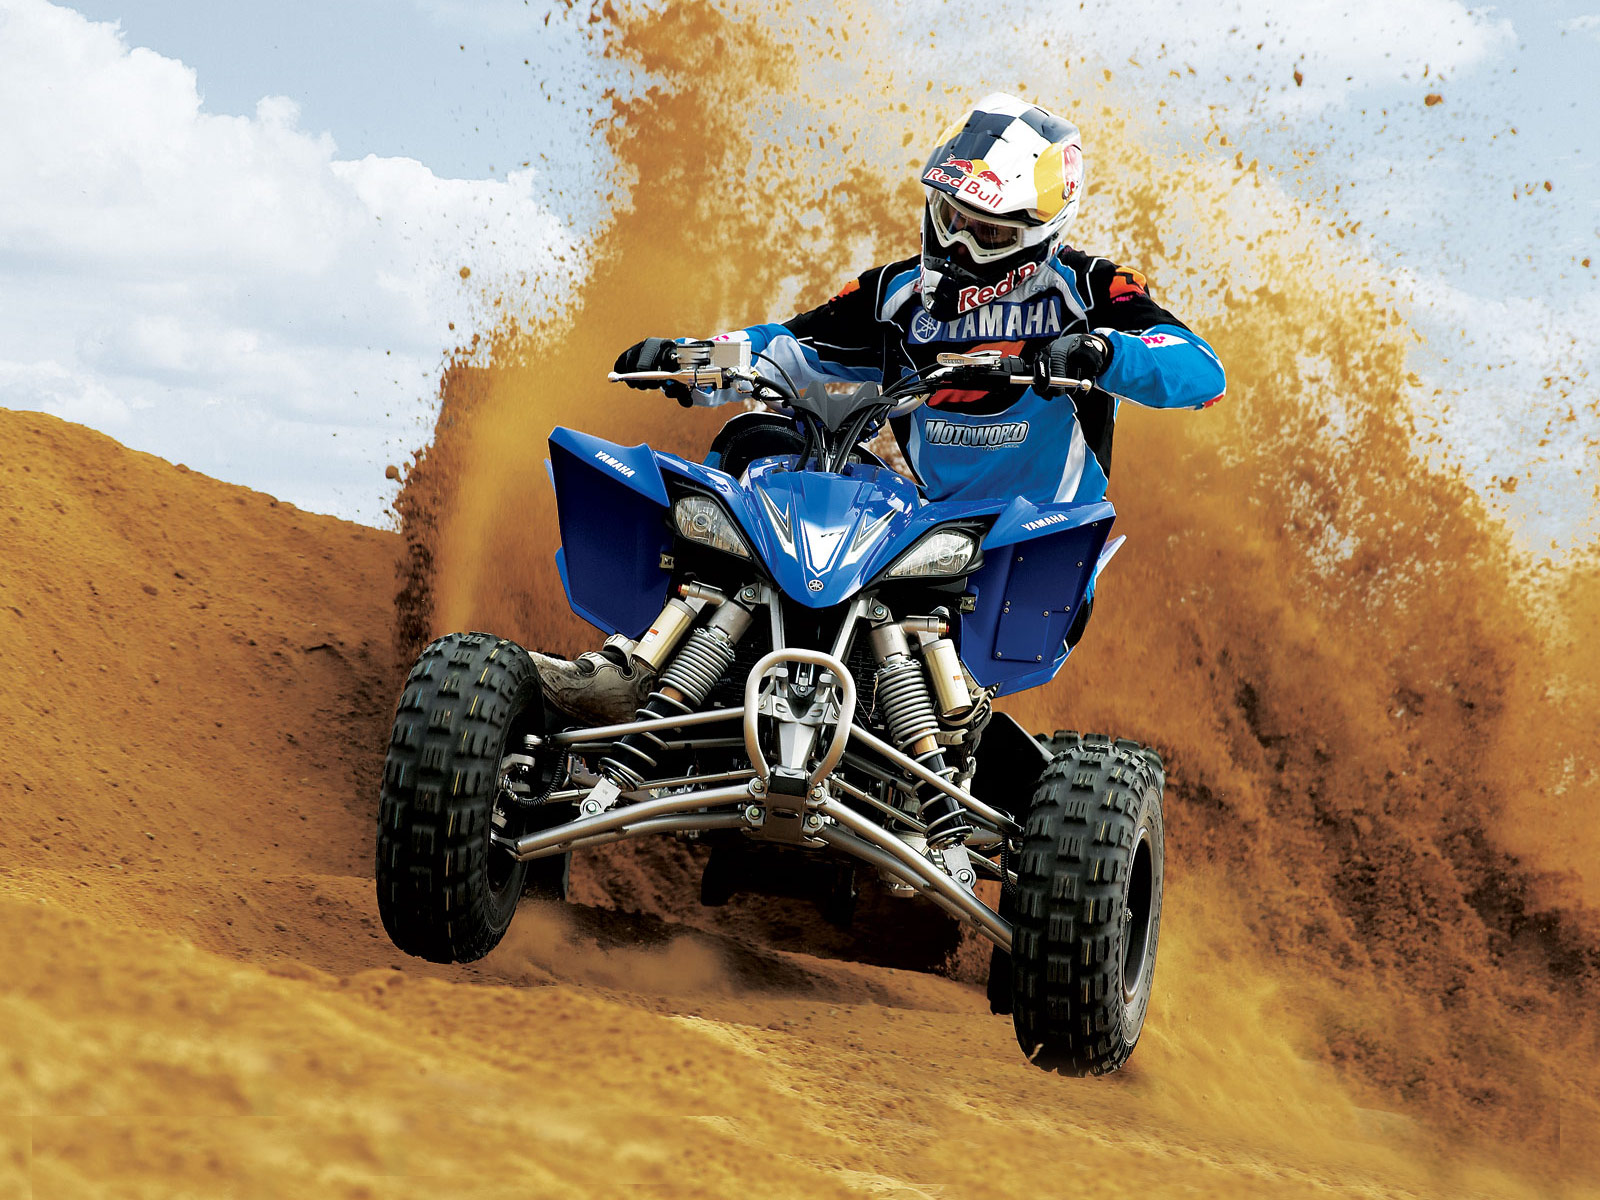 Best ATV Dirt Wallpaper Laptop Backgrounds 823 2568 Wallpaper Cool 1600x1200